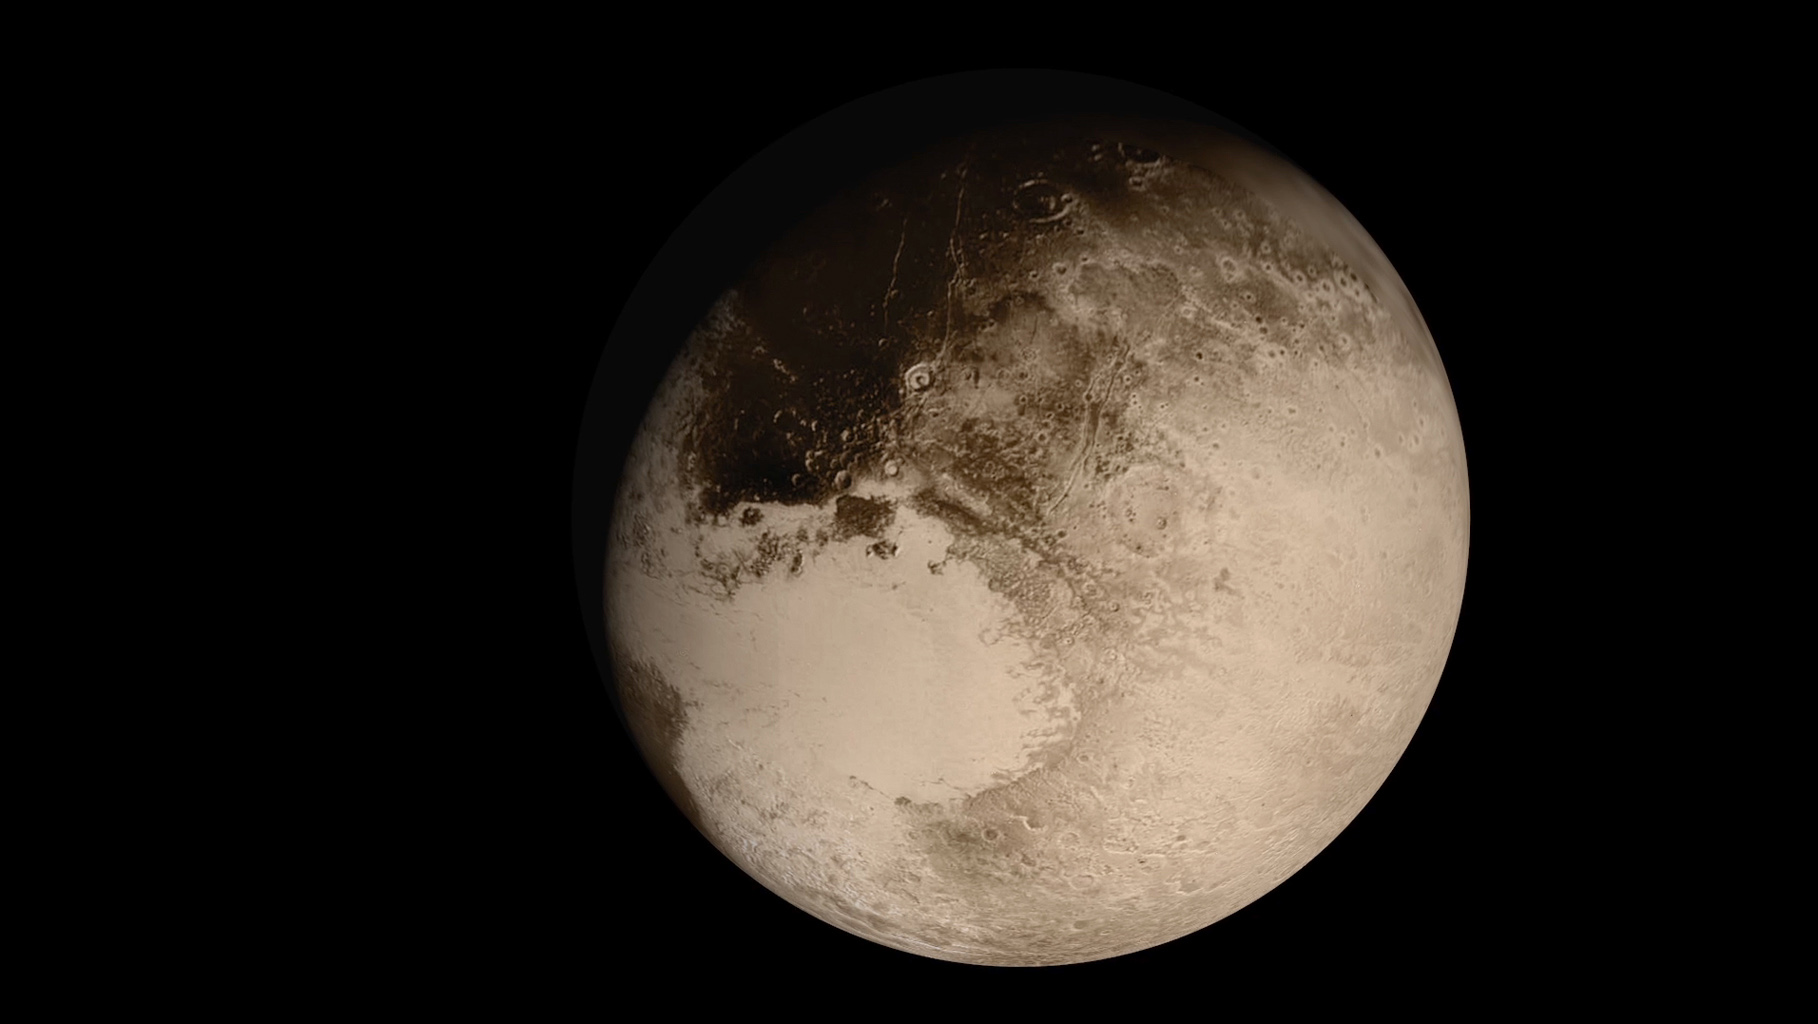 nasa images of pluto - photo #37